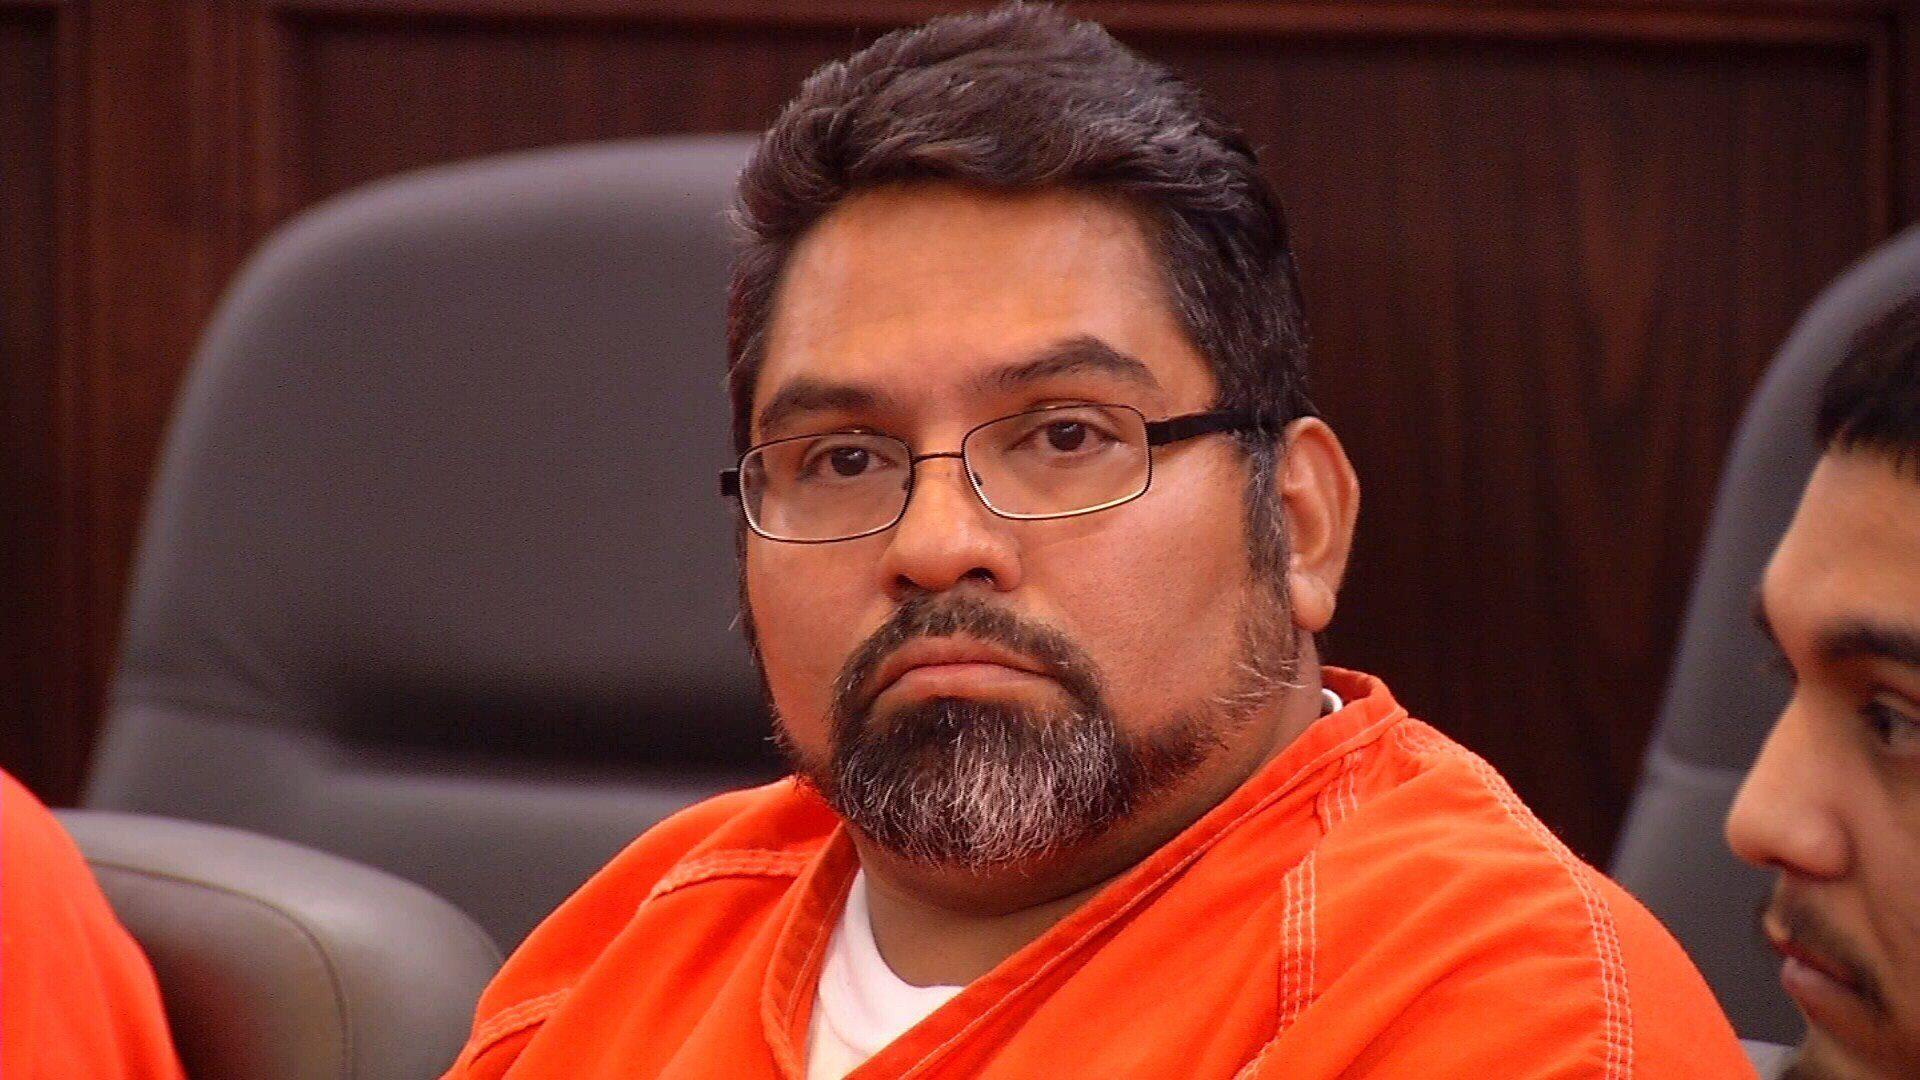 George Rodriguez is charged with intoxication manslaughter.